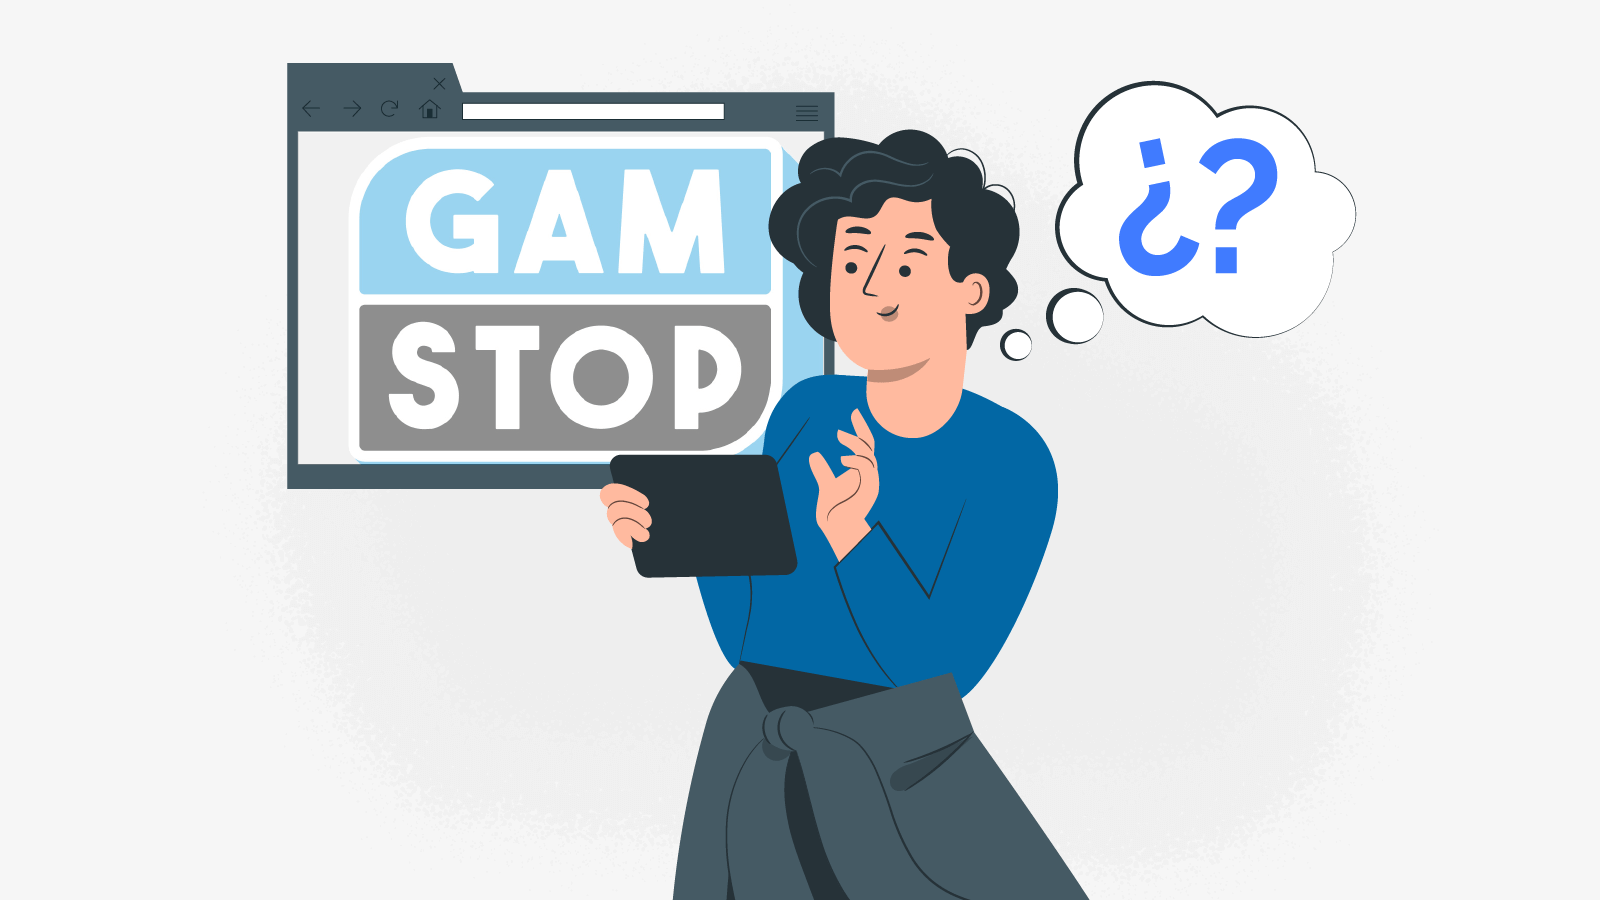 What is GAMSTOP